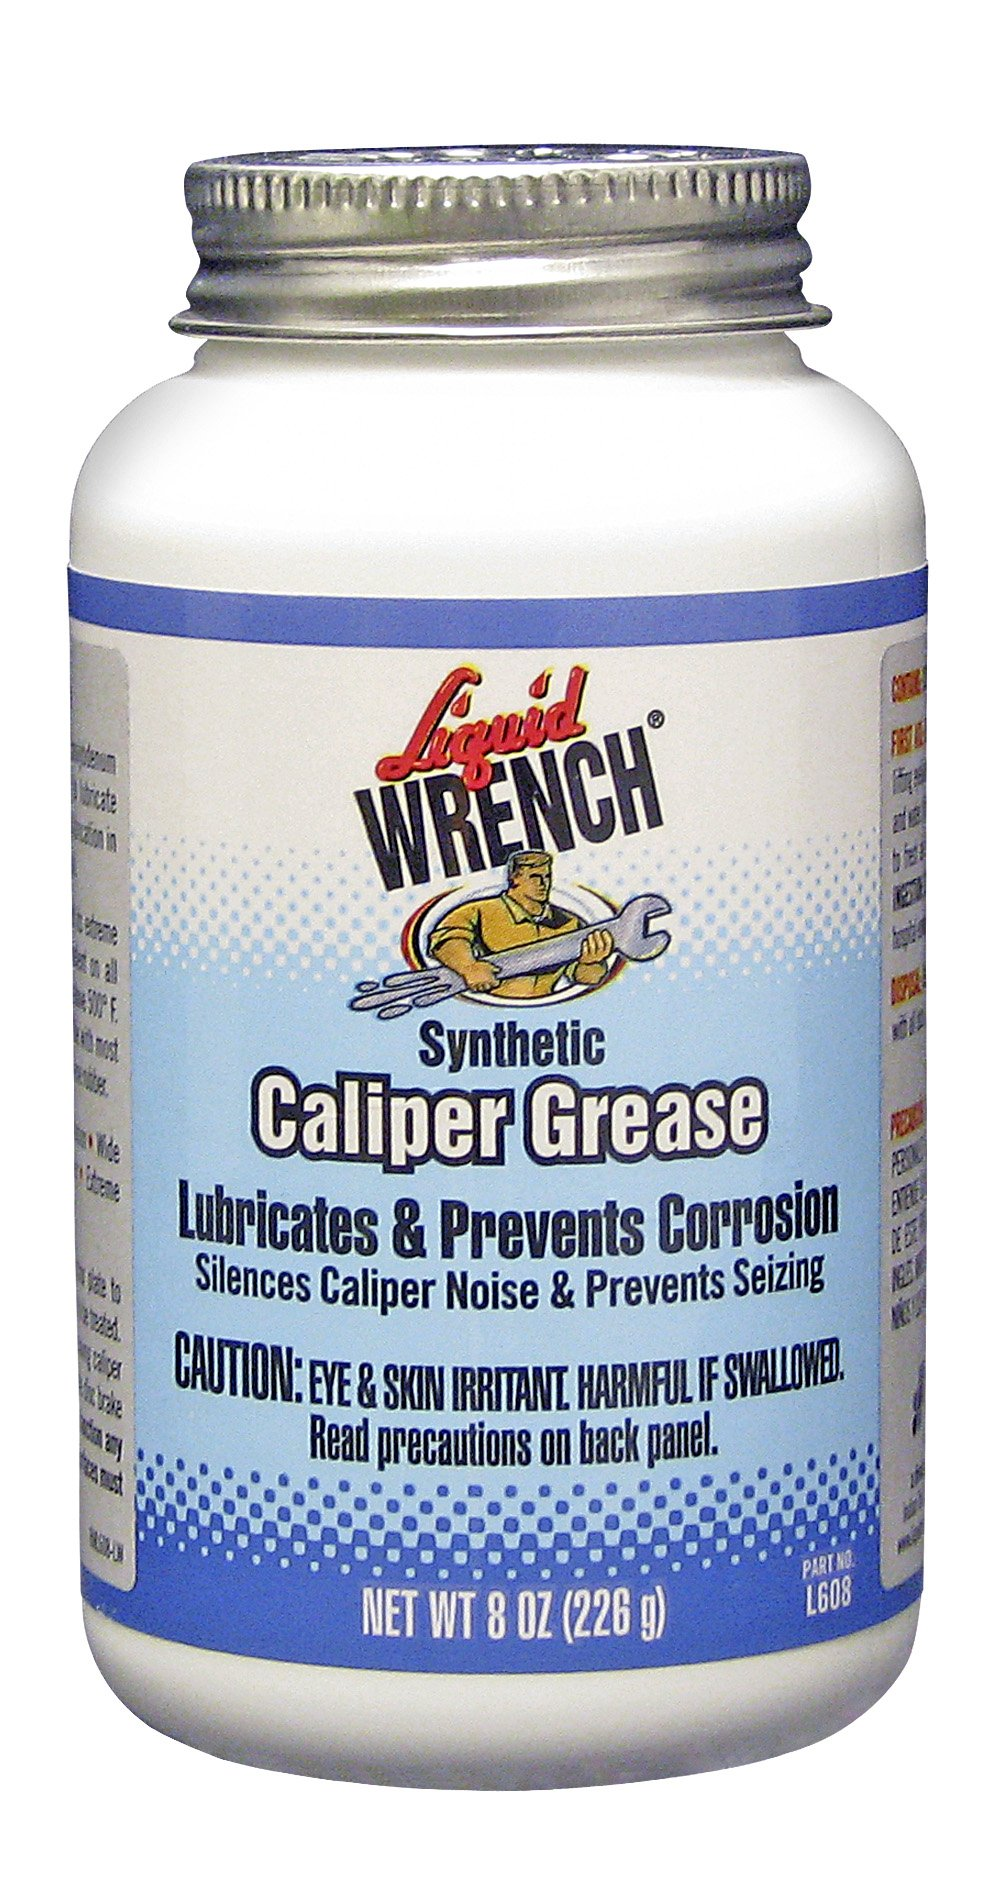 Liquid Wrench L608/6-6PK Disc Brake Caliper Grease - 8 oz, (Pack of 6) by Liquid Wrench